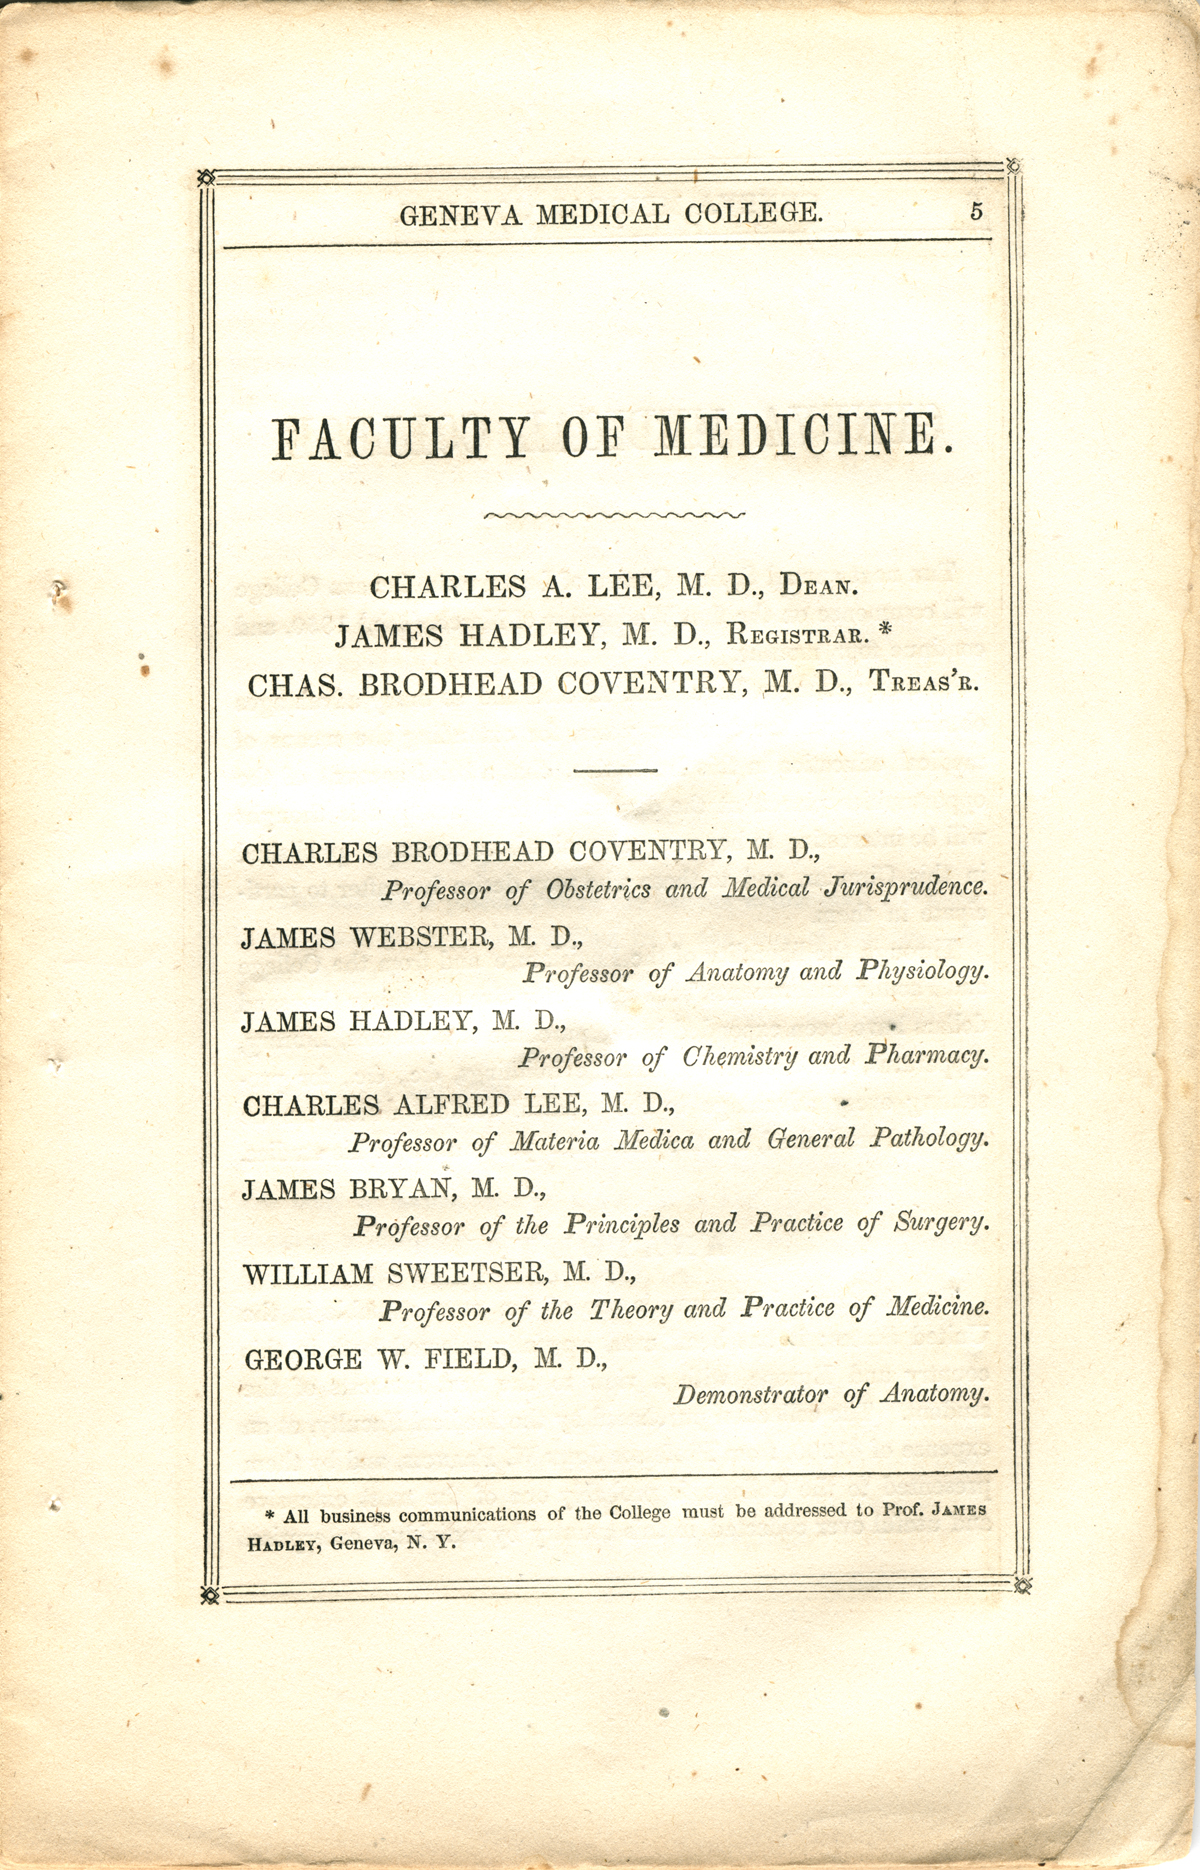 elizabeth blackwell thesis statement This award recognizes an outstanding research report, master's thesis, dissertation, or published article related to women and health or women in health-related endeavors it is named for elizabeth blackwell, md, the first woman to graduate from medical school, and made possible by the generosity.